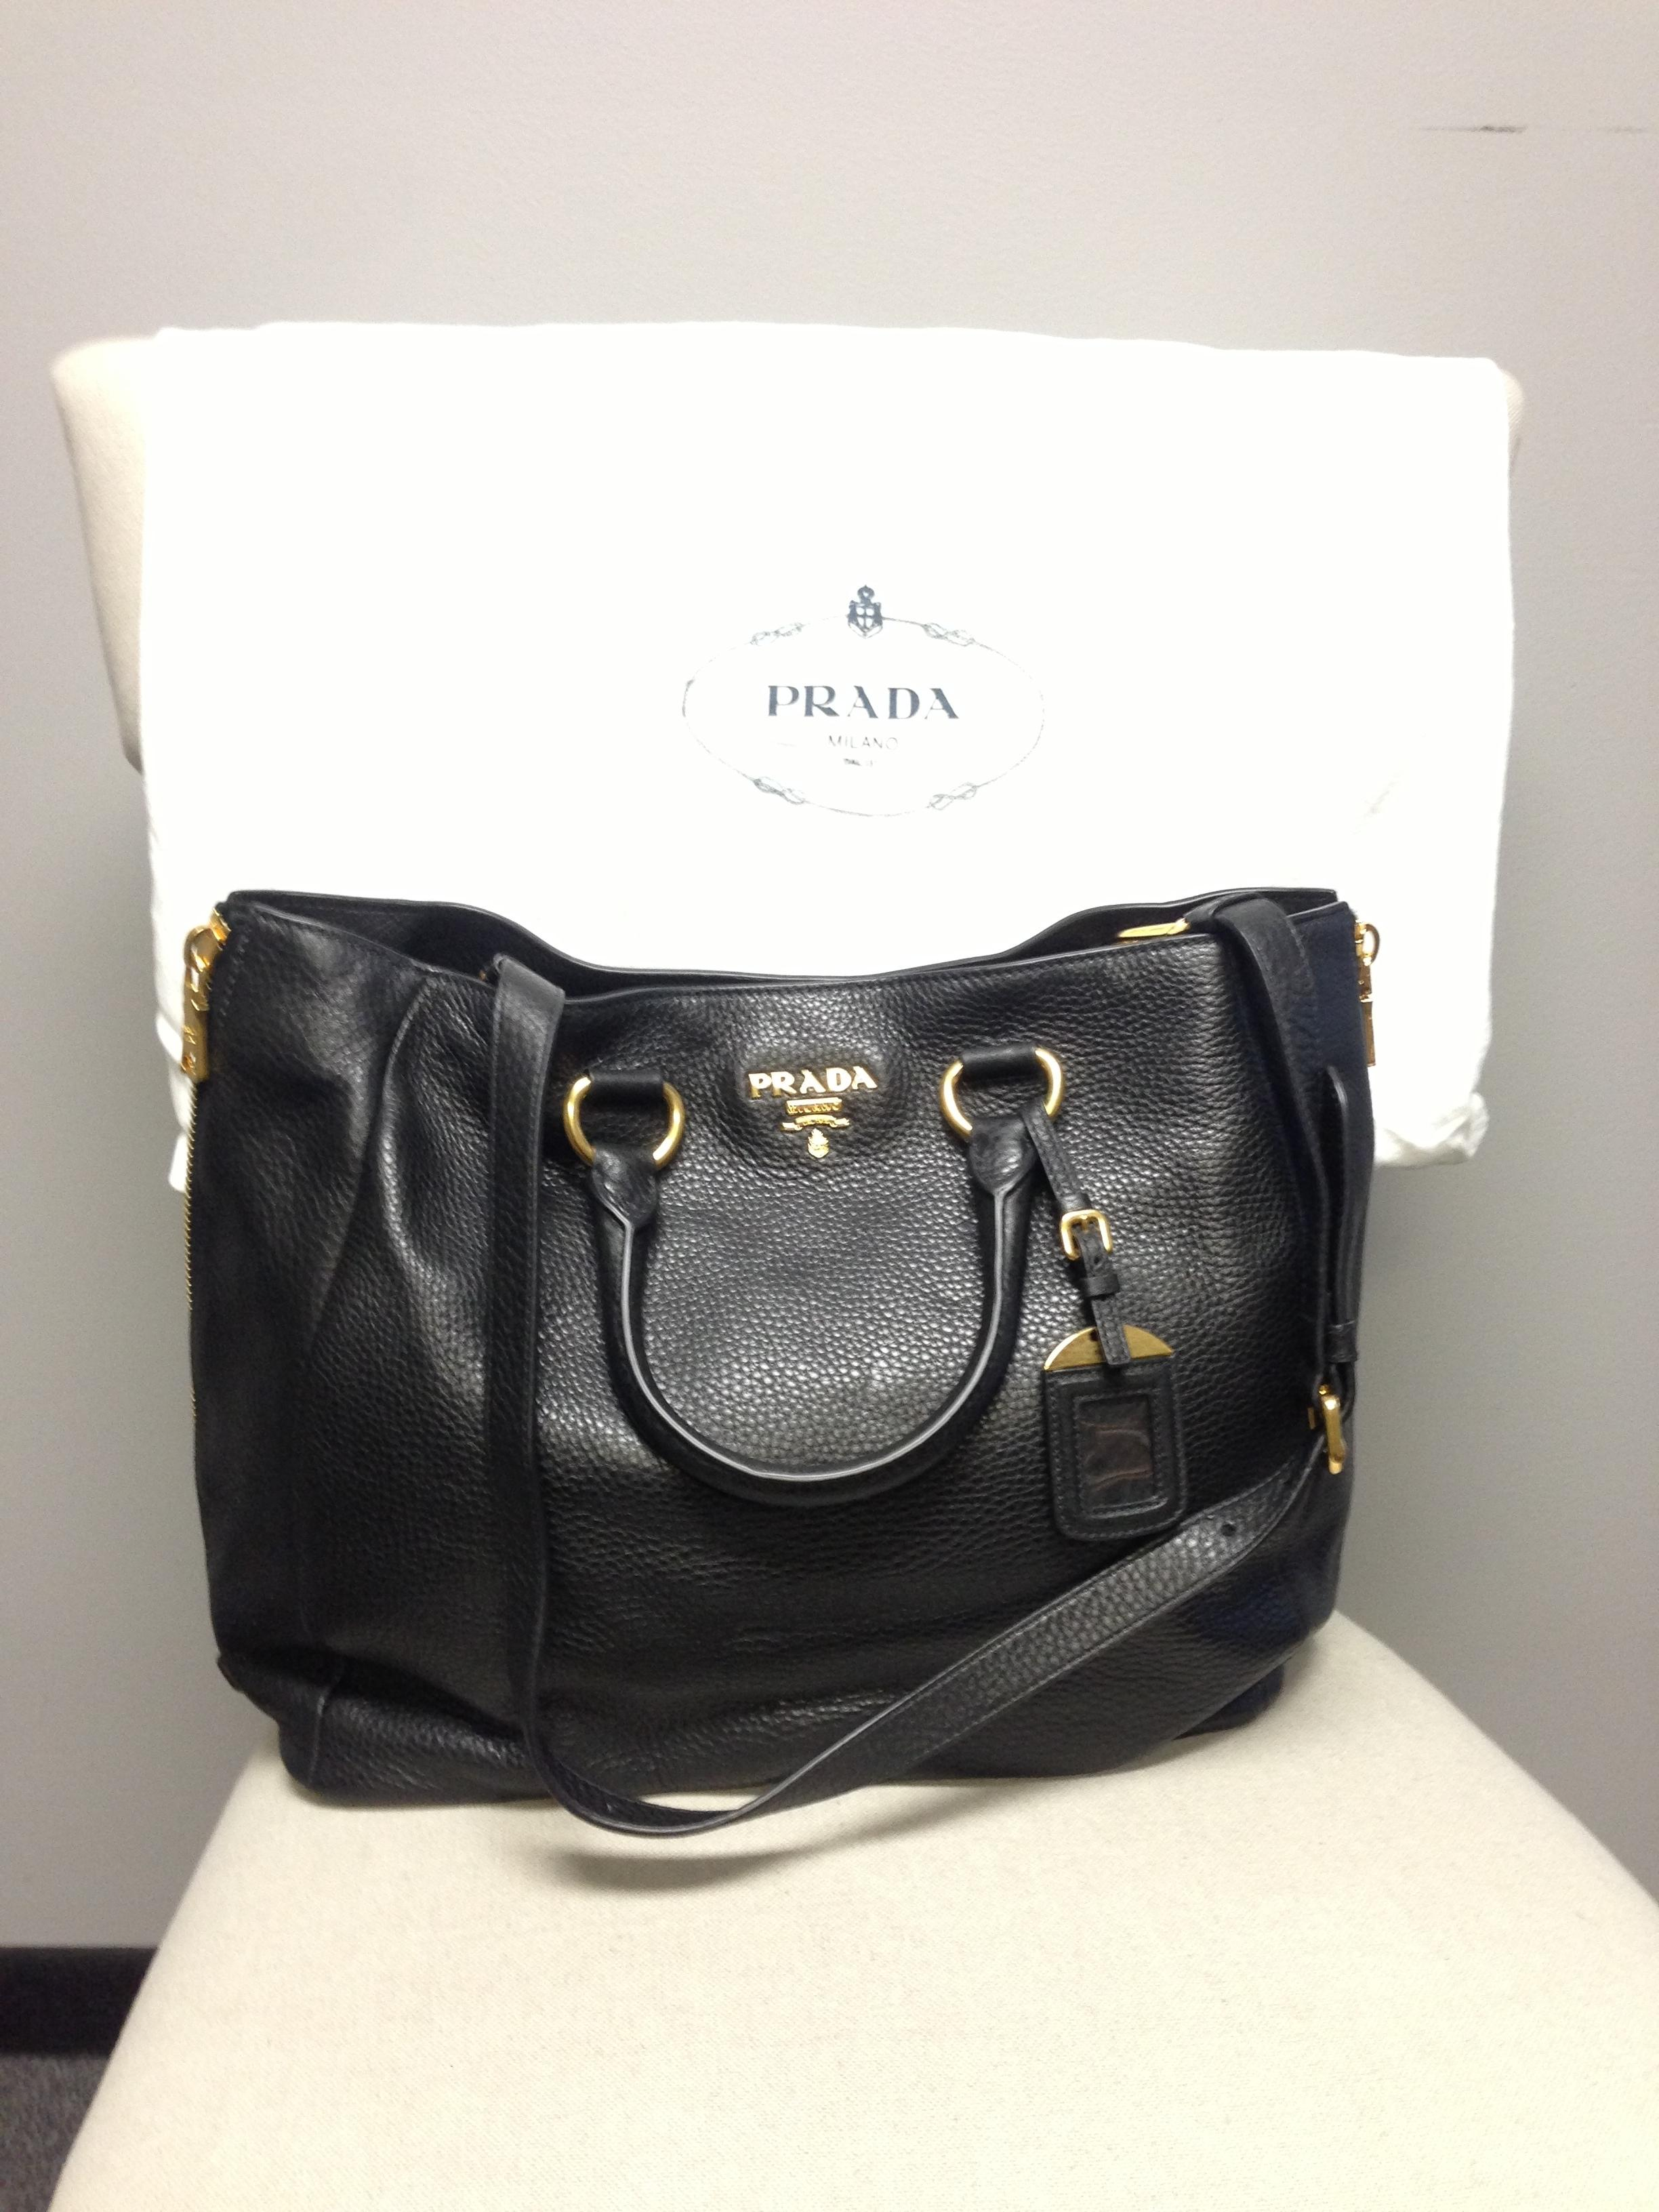 33fae26a62 ... inexpensive womens prada over the shoulder bag on poshmark prada bags  on sale up to 70